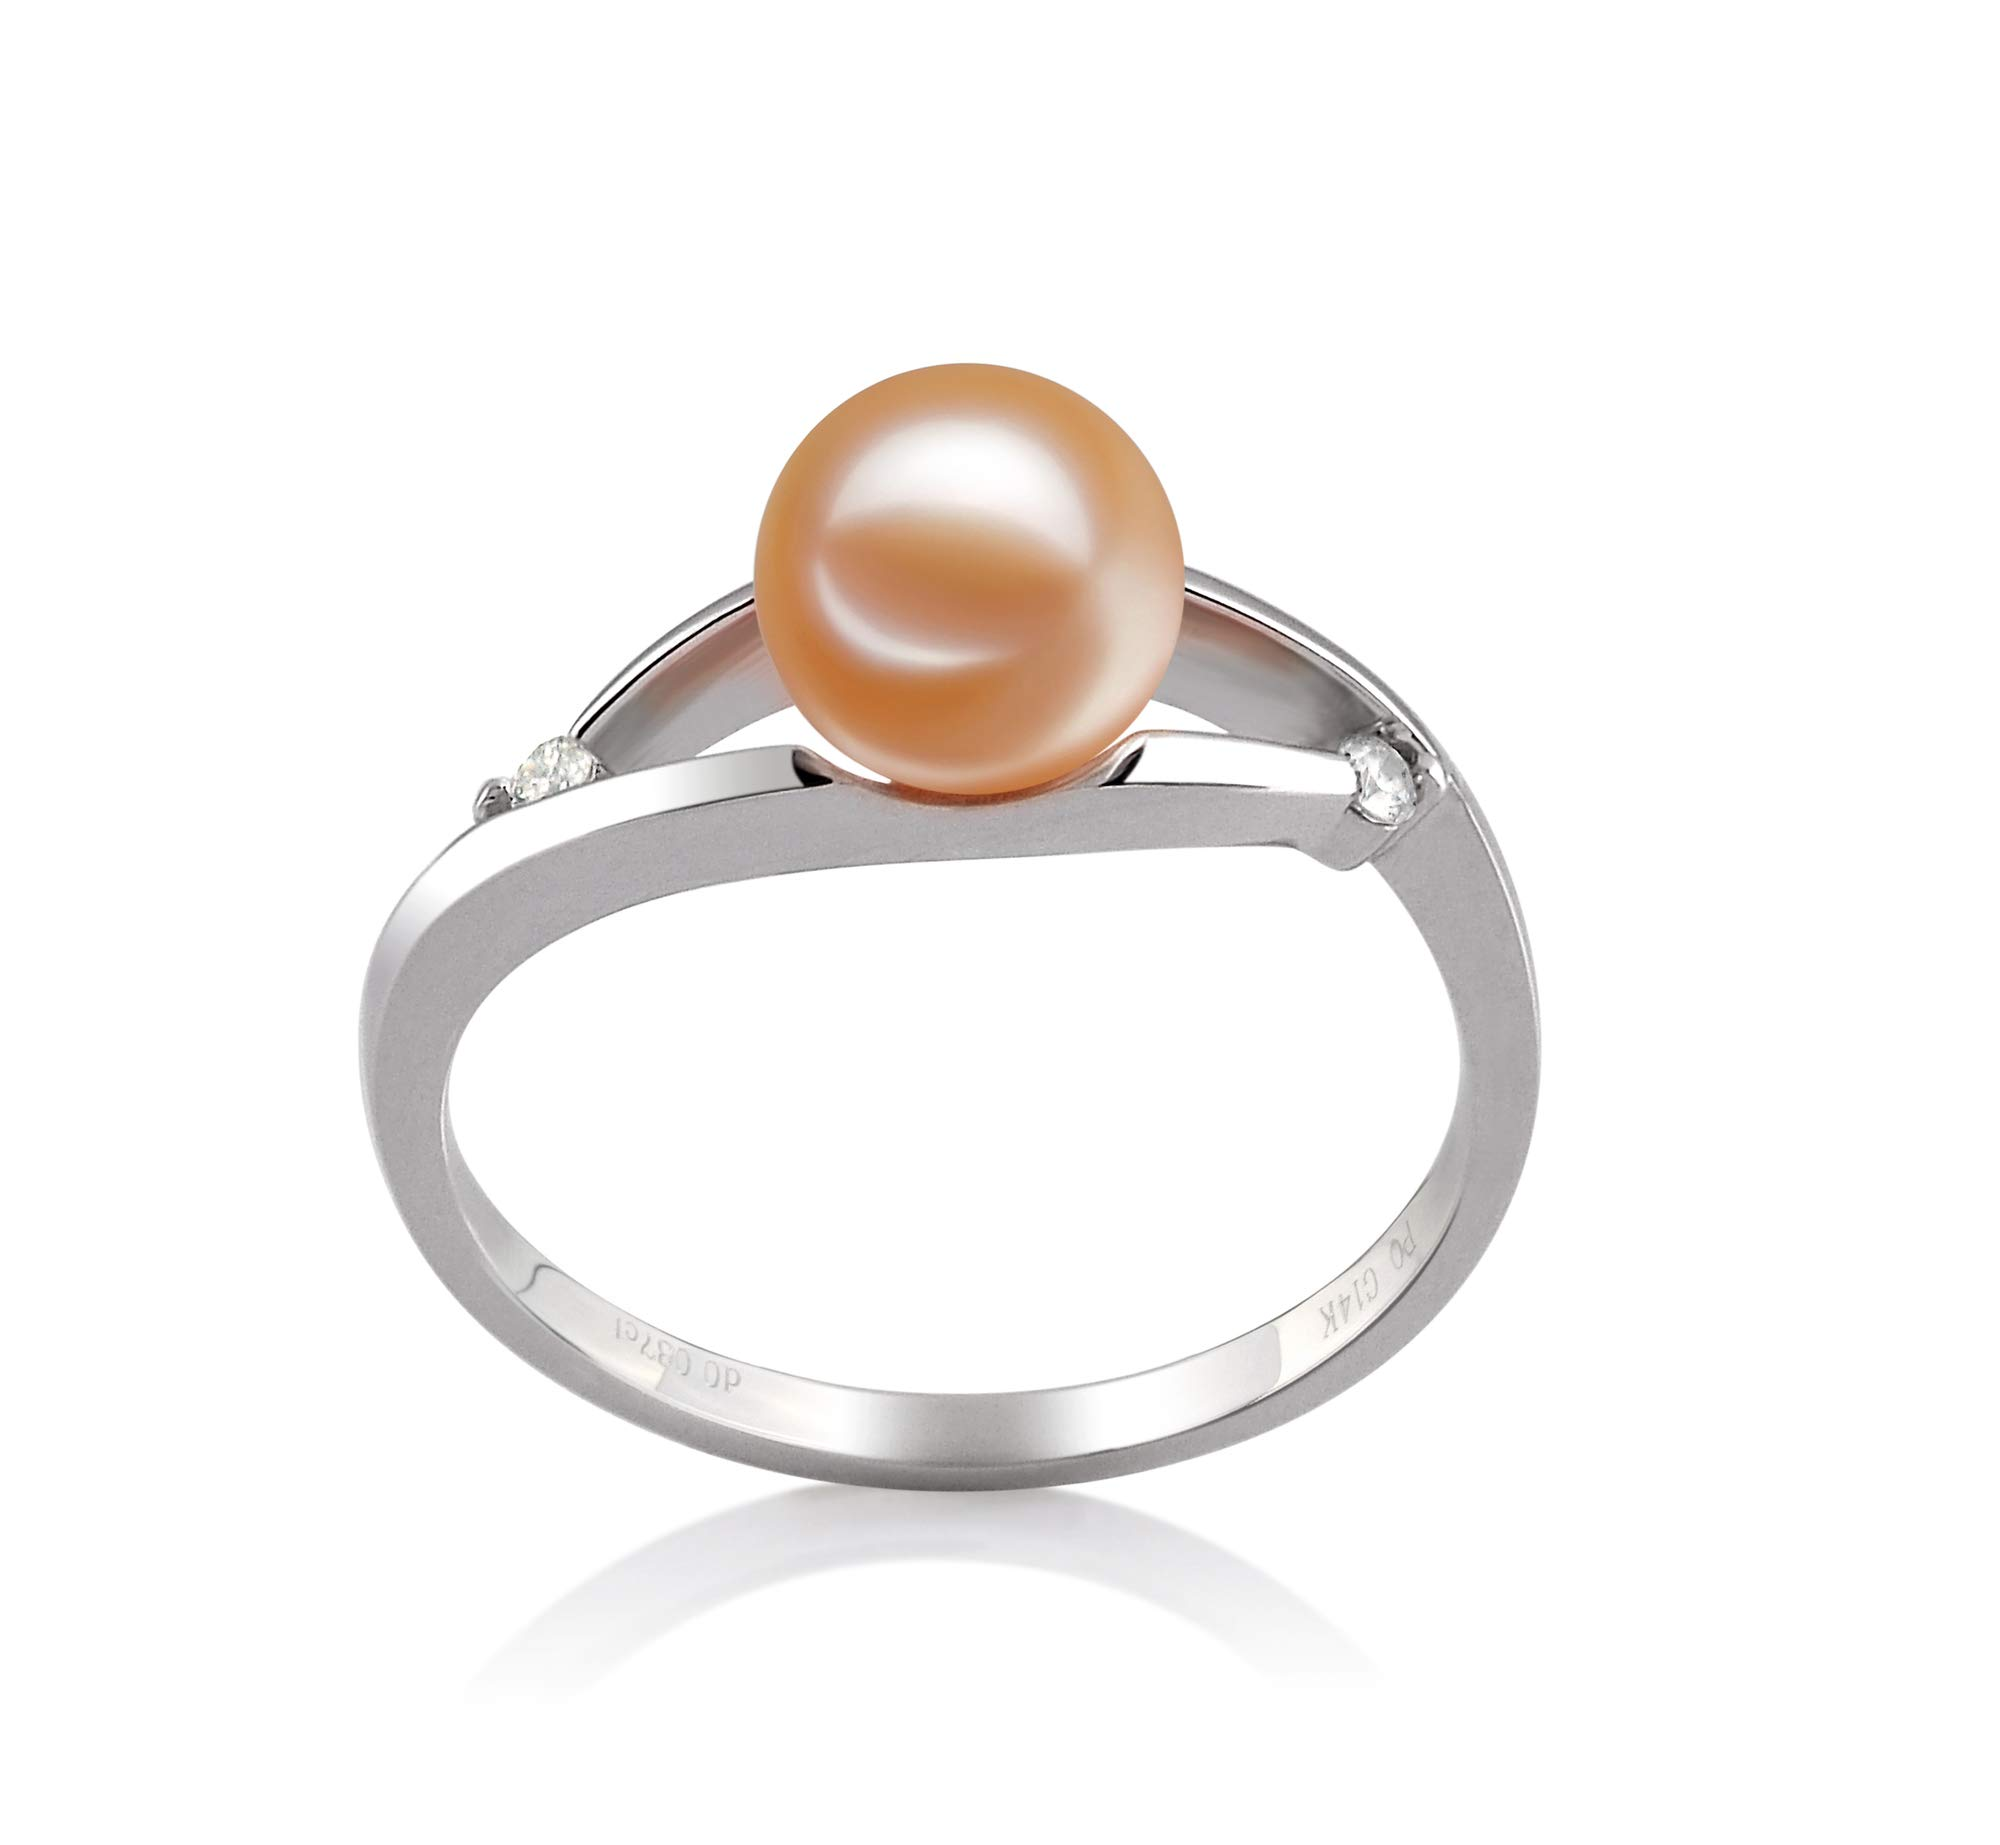 Tanya Pink 6-7mm AAAA Quality Freshwater 14K White Gold Cultured Pearl Ring For Women - Size-7